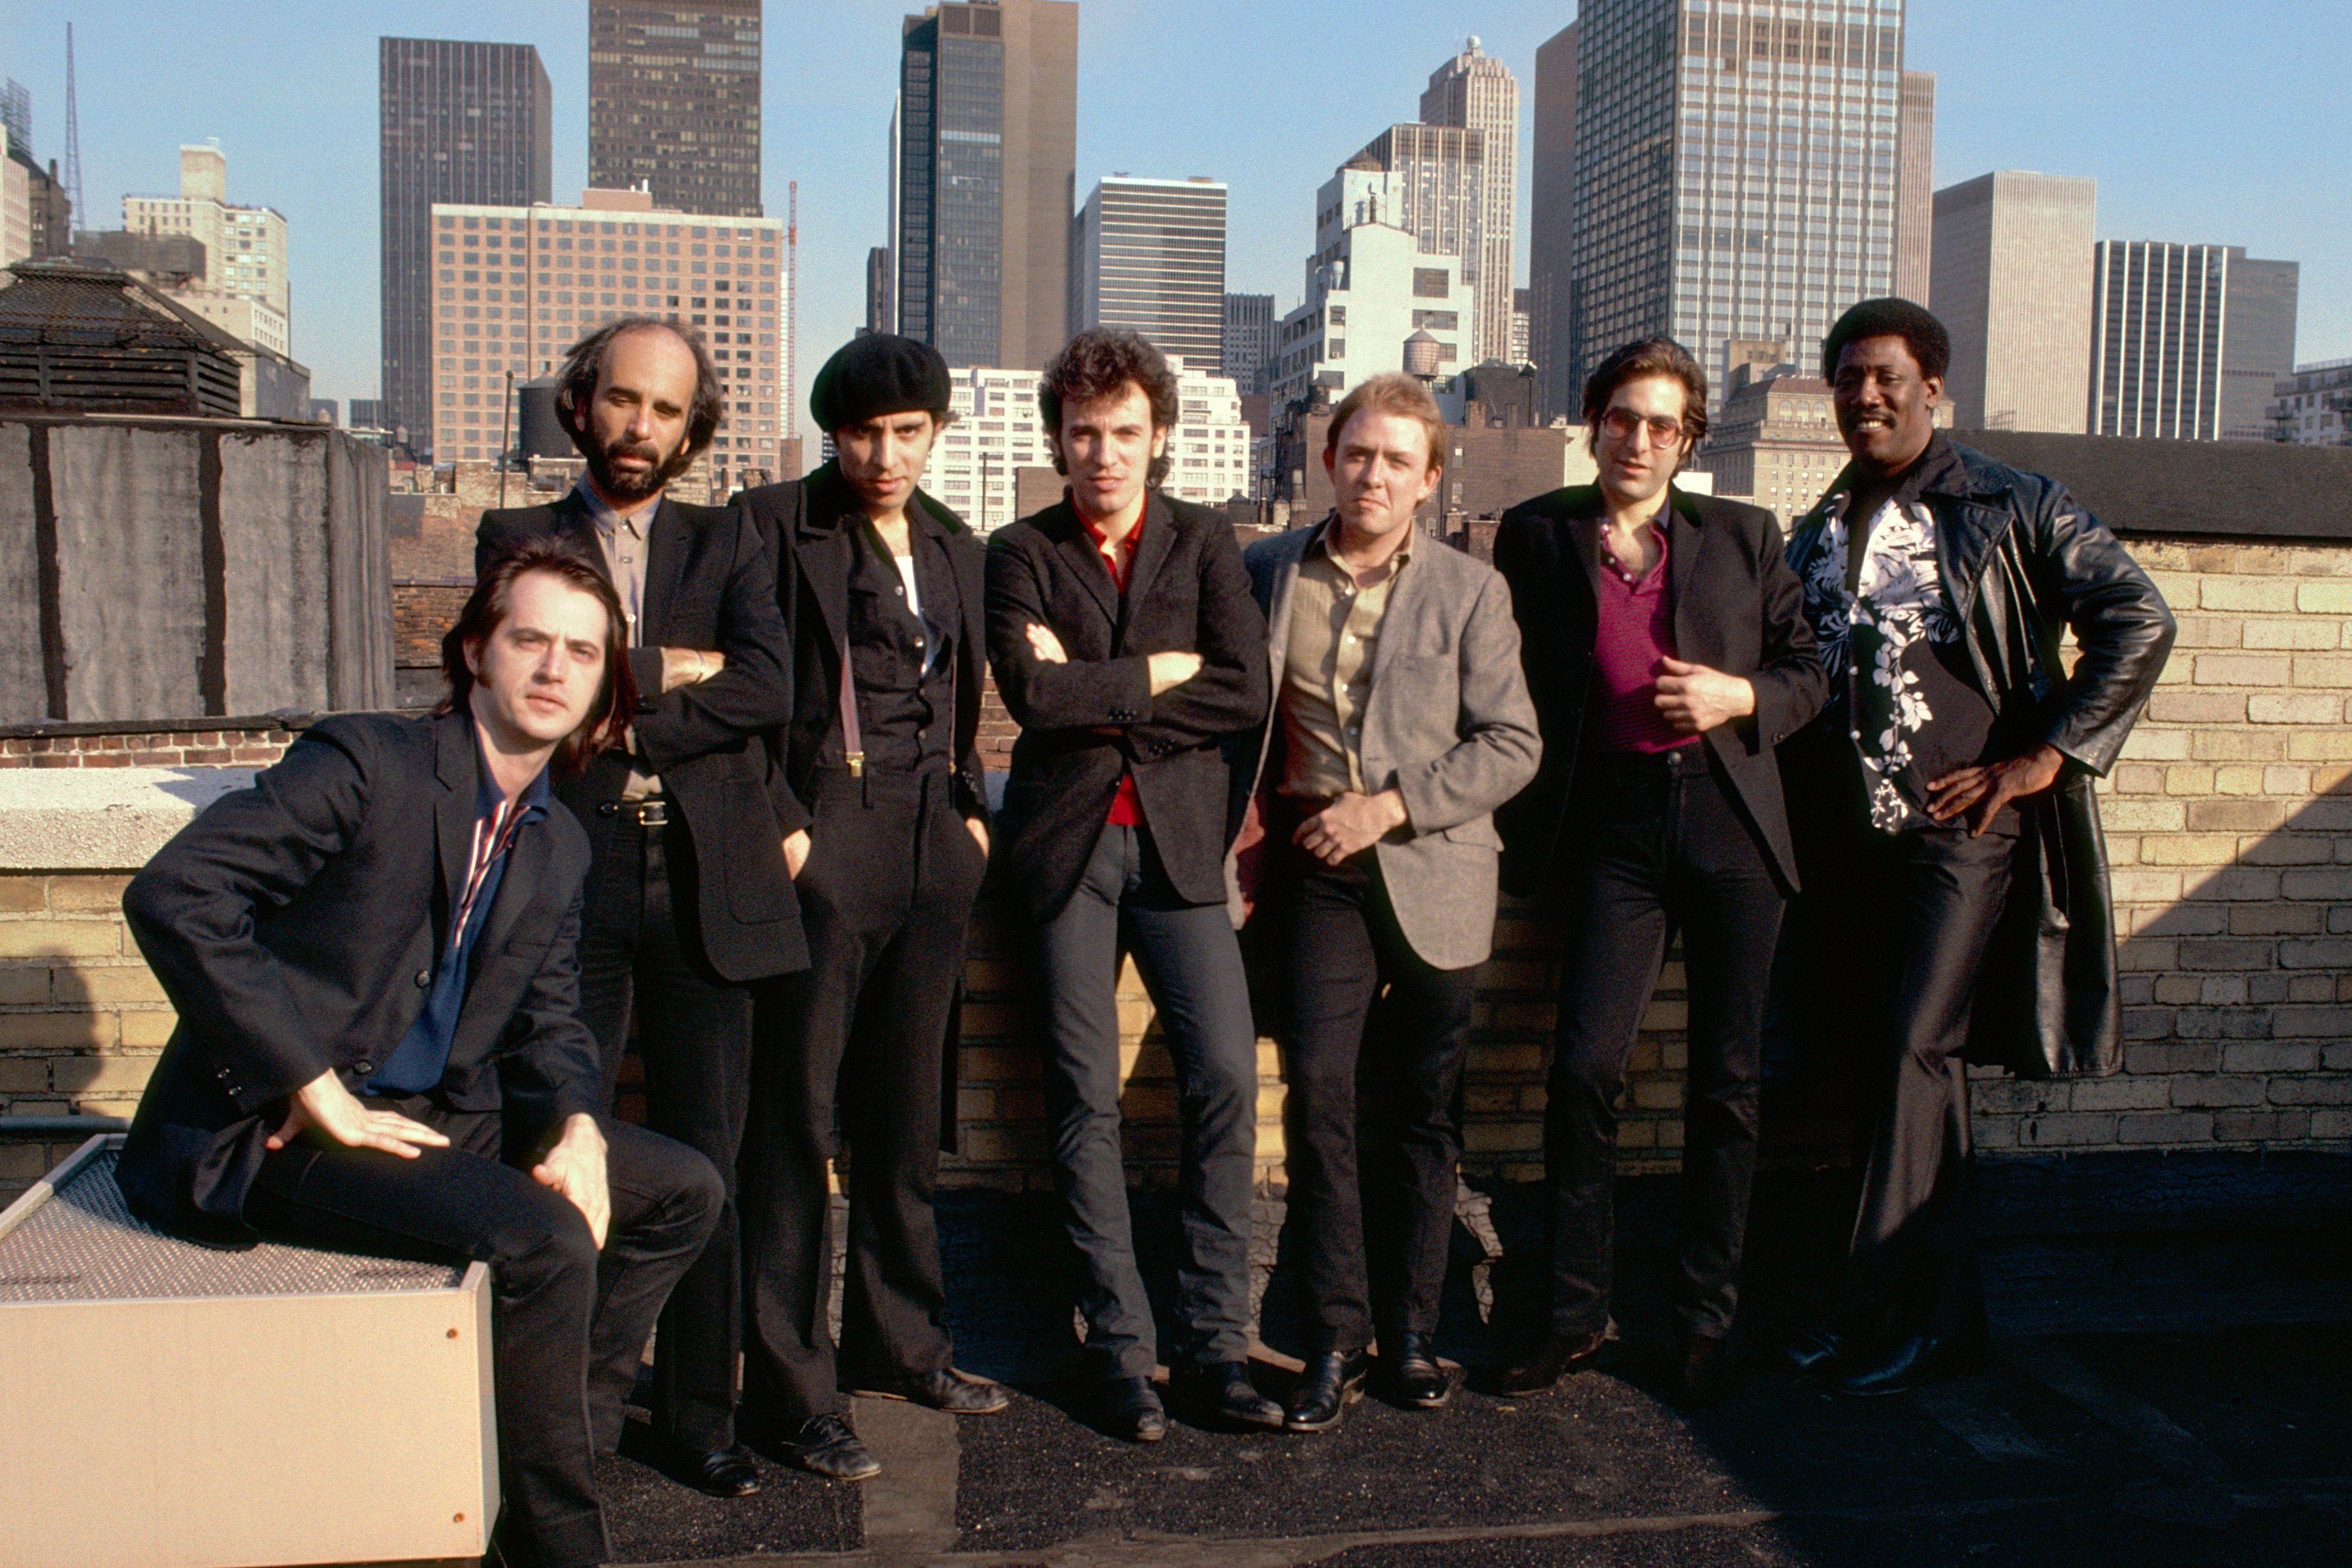 Bruce Springsteen &                               The E Street Band are seen on the roof of the                                Power Station recording studio in New York City, April 1980.